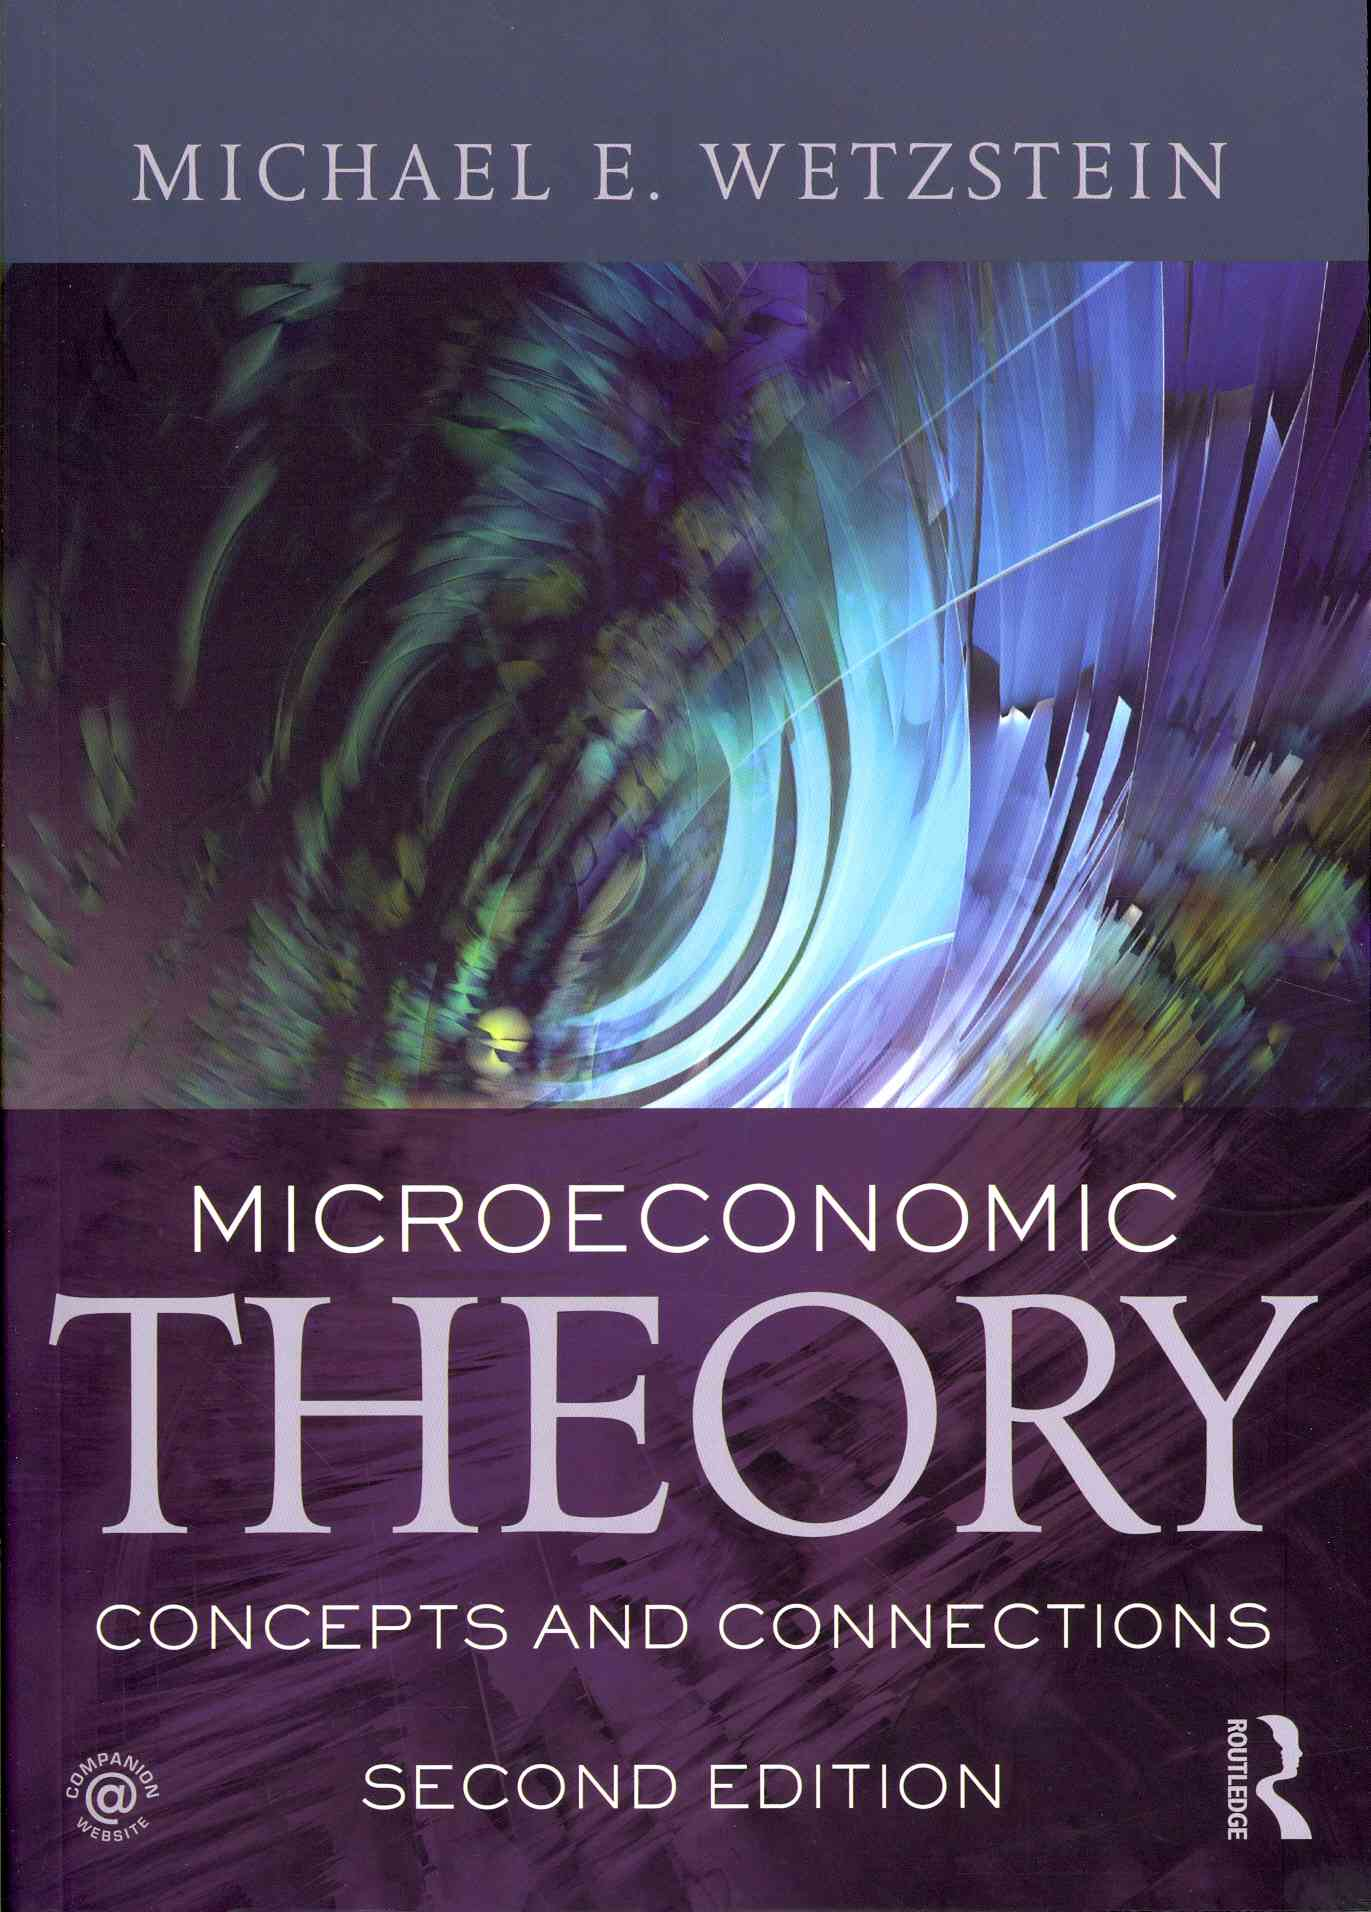 Microeconomic Theory By Wetzstein, Michael E.